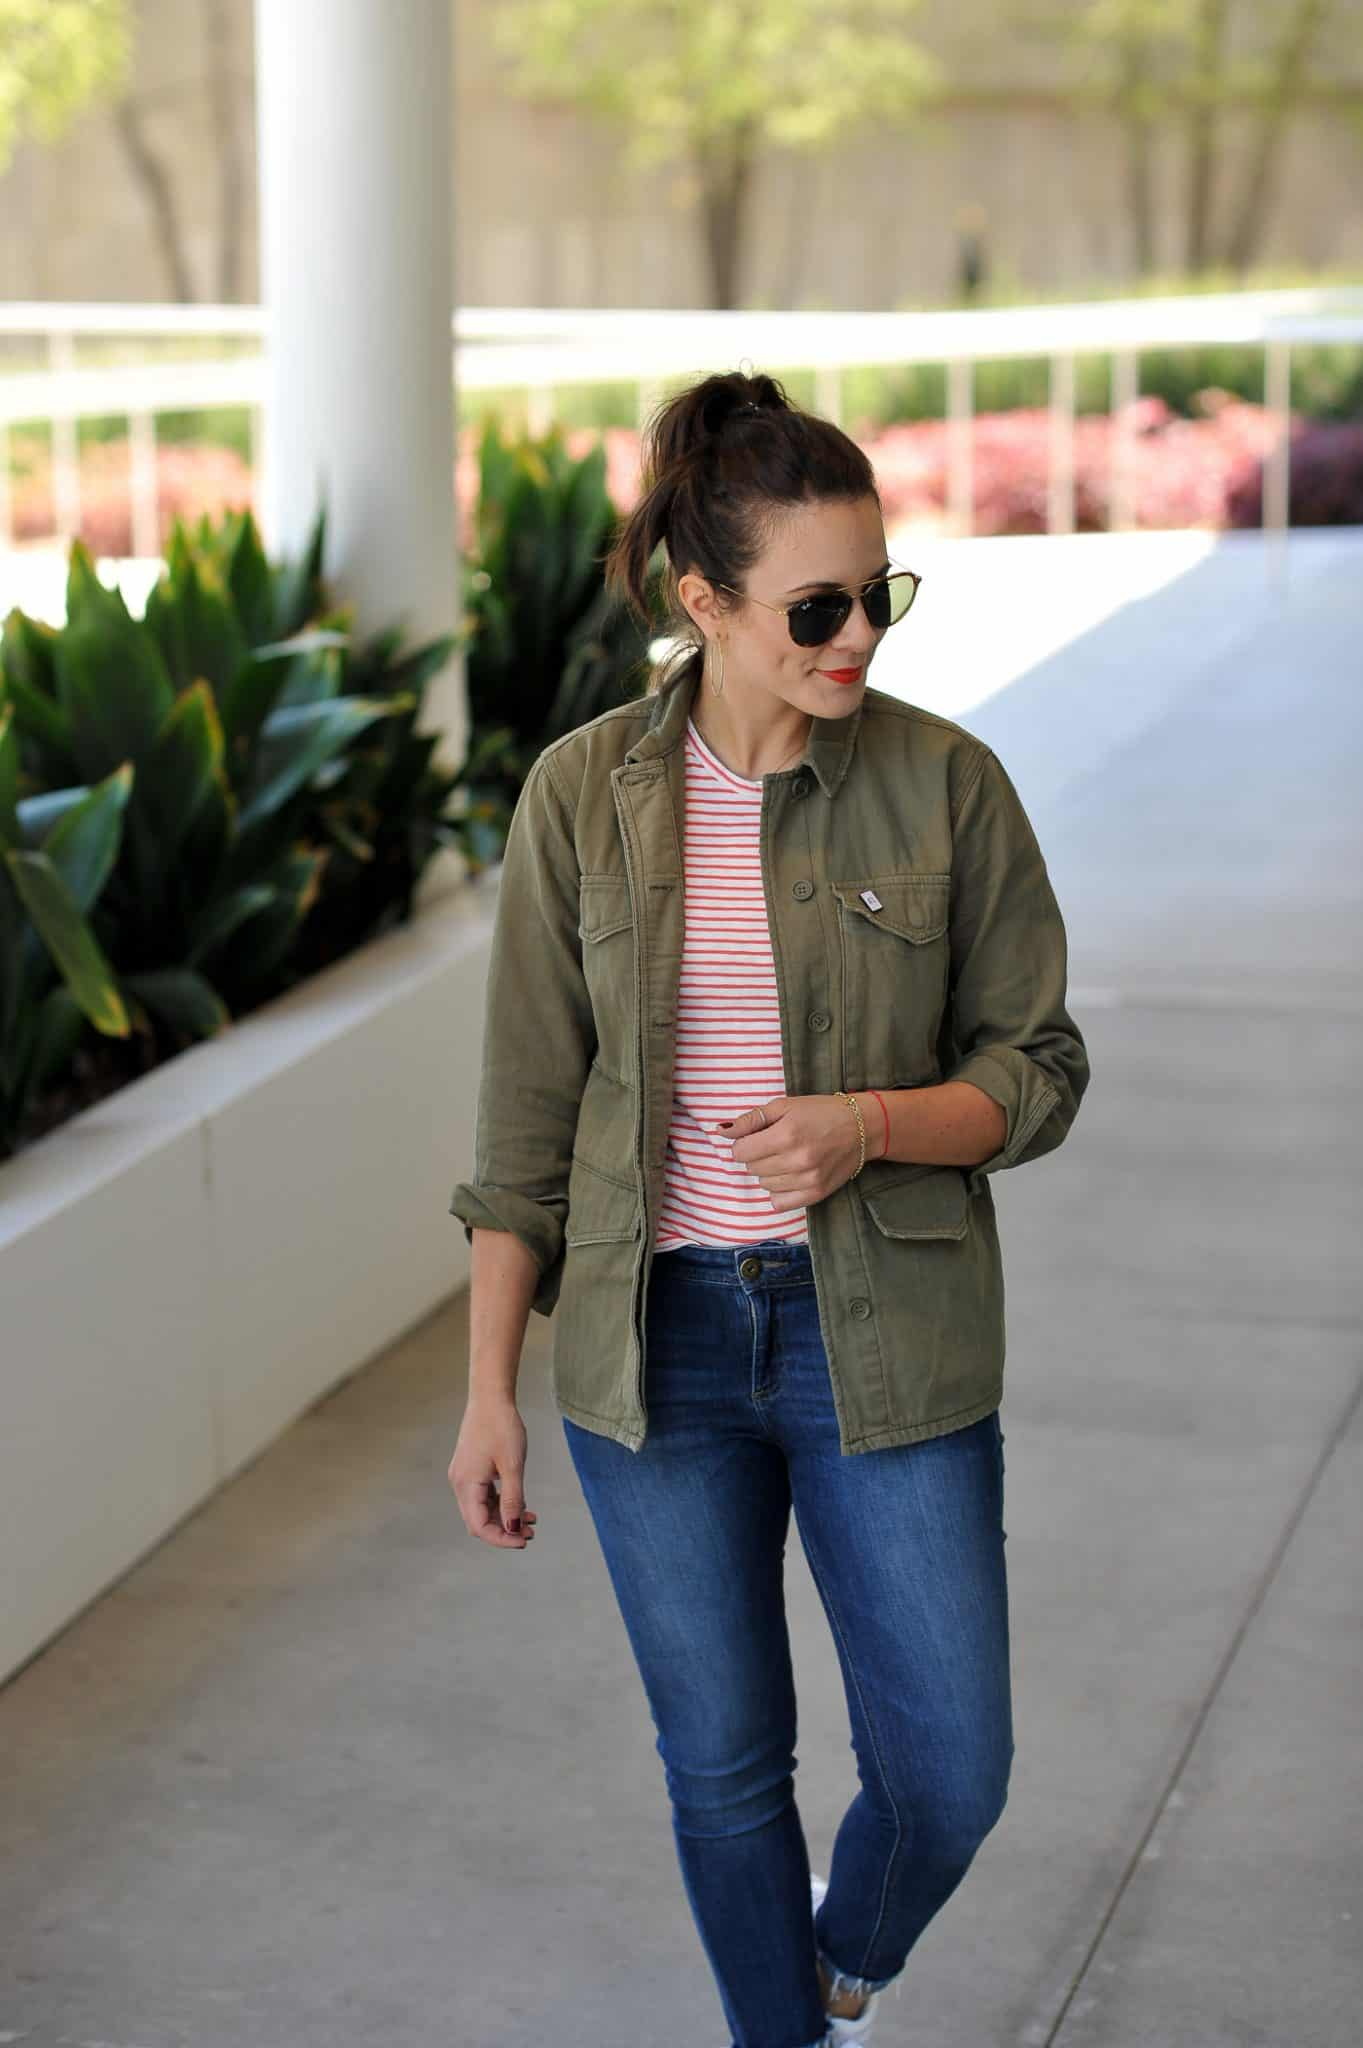 striped tee and jeans, classic outfits with denim - My Style Vita @mystylevita